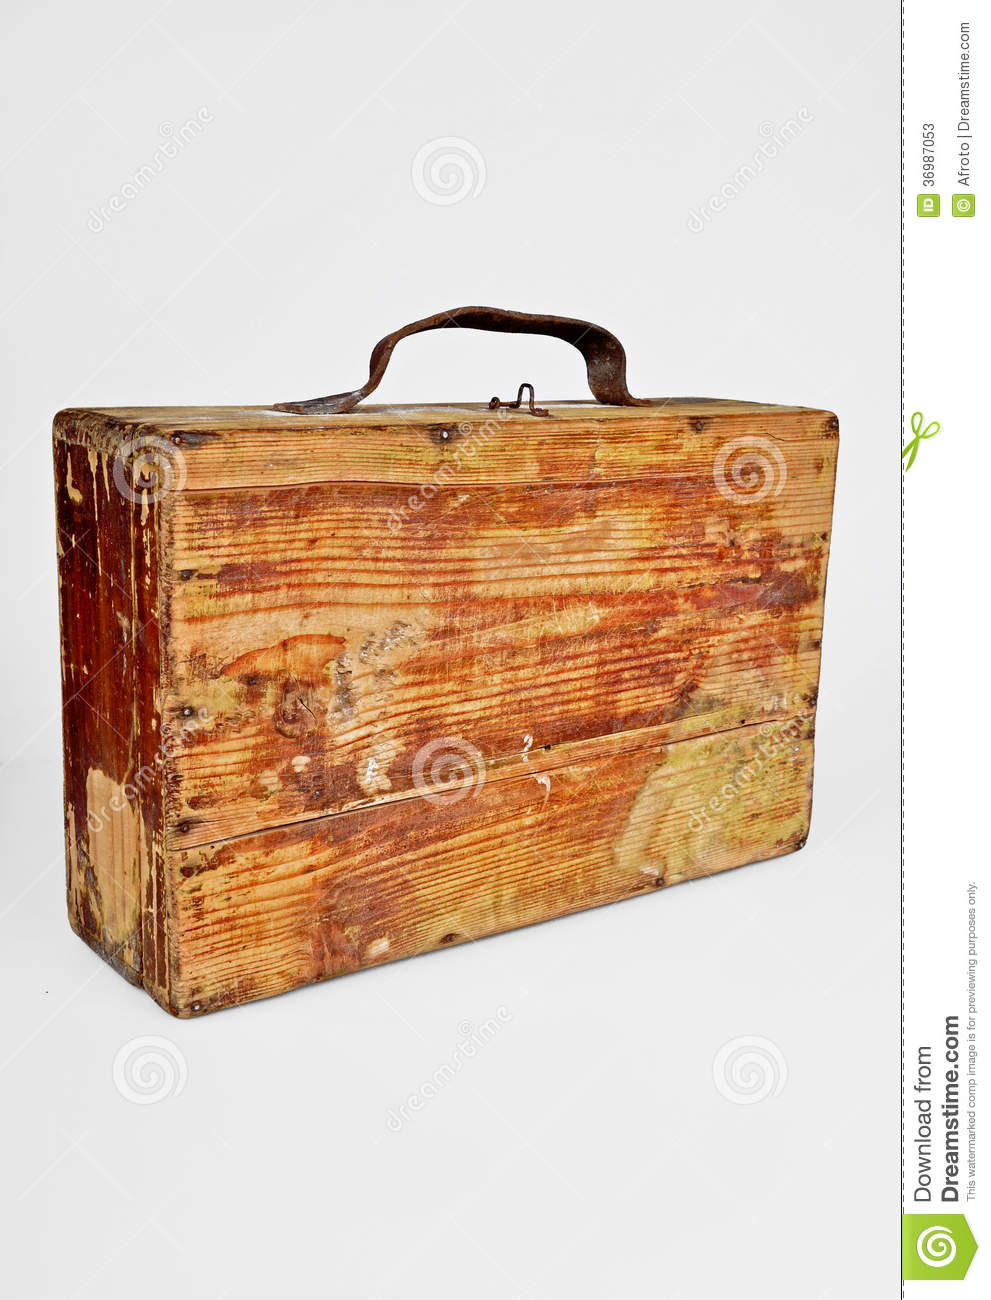 Old Wooden Suitcase Stock Photos - Image: 36987053